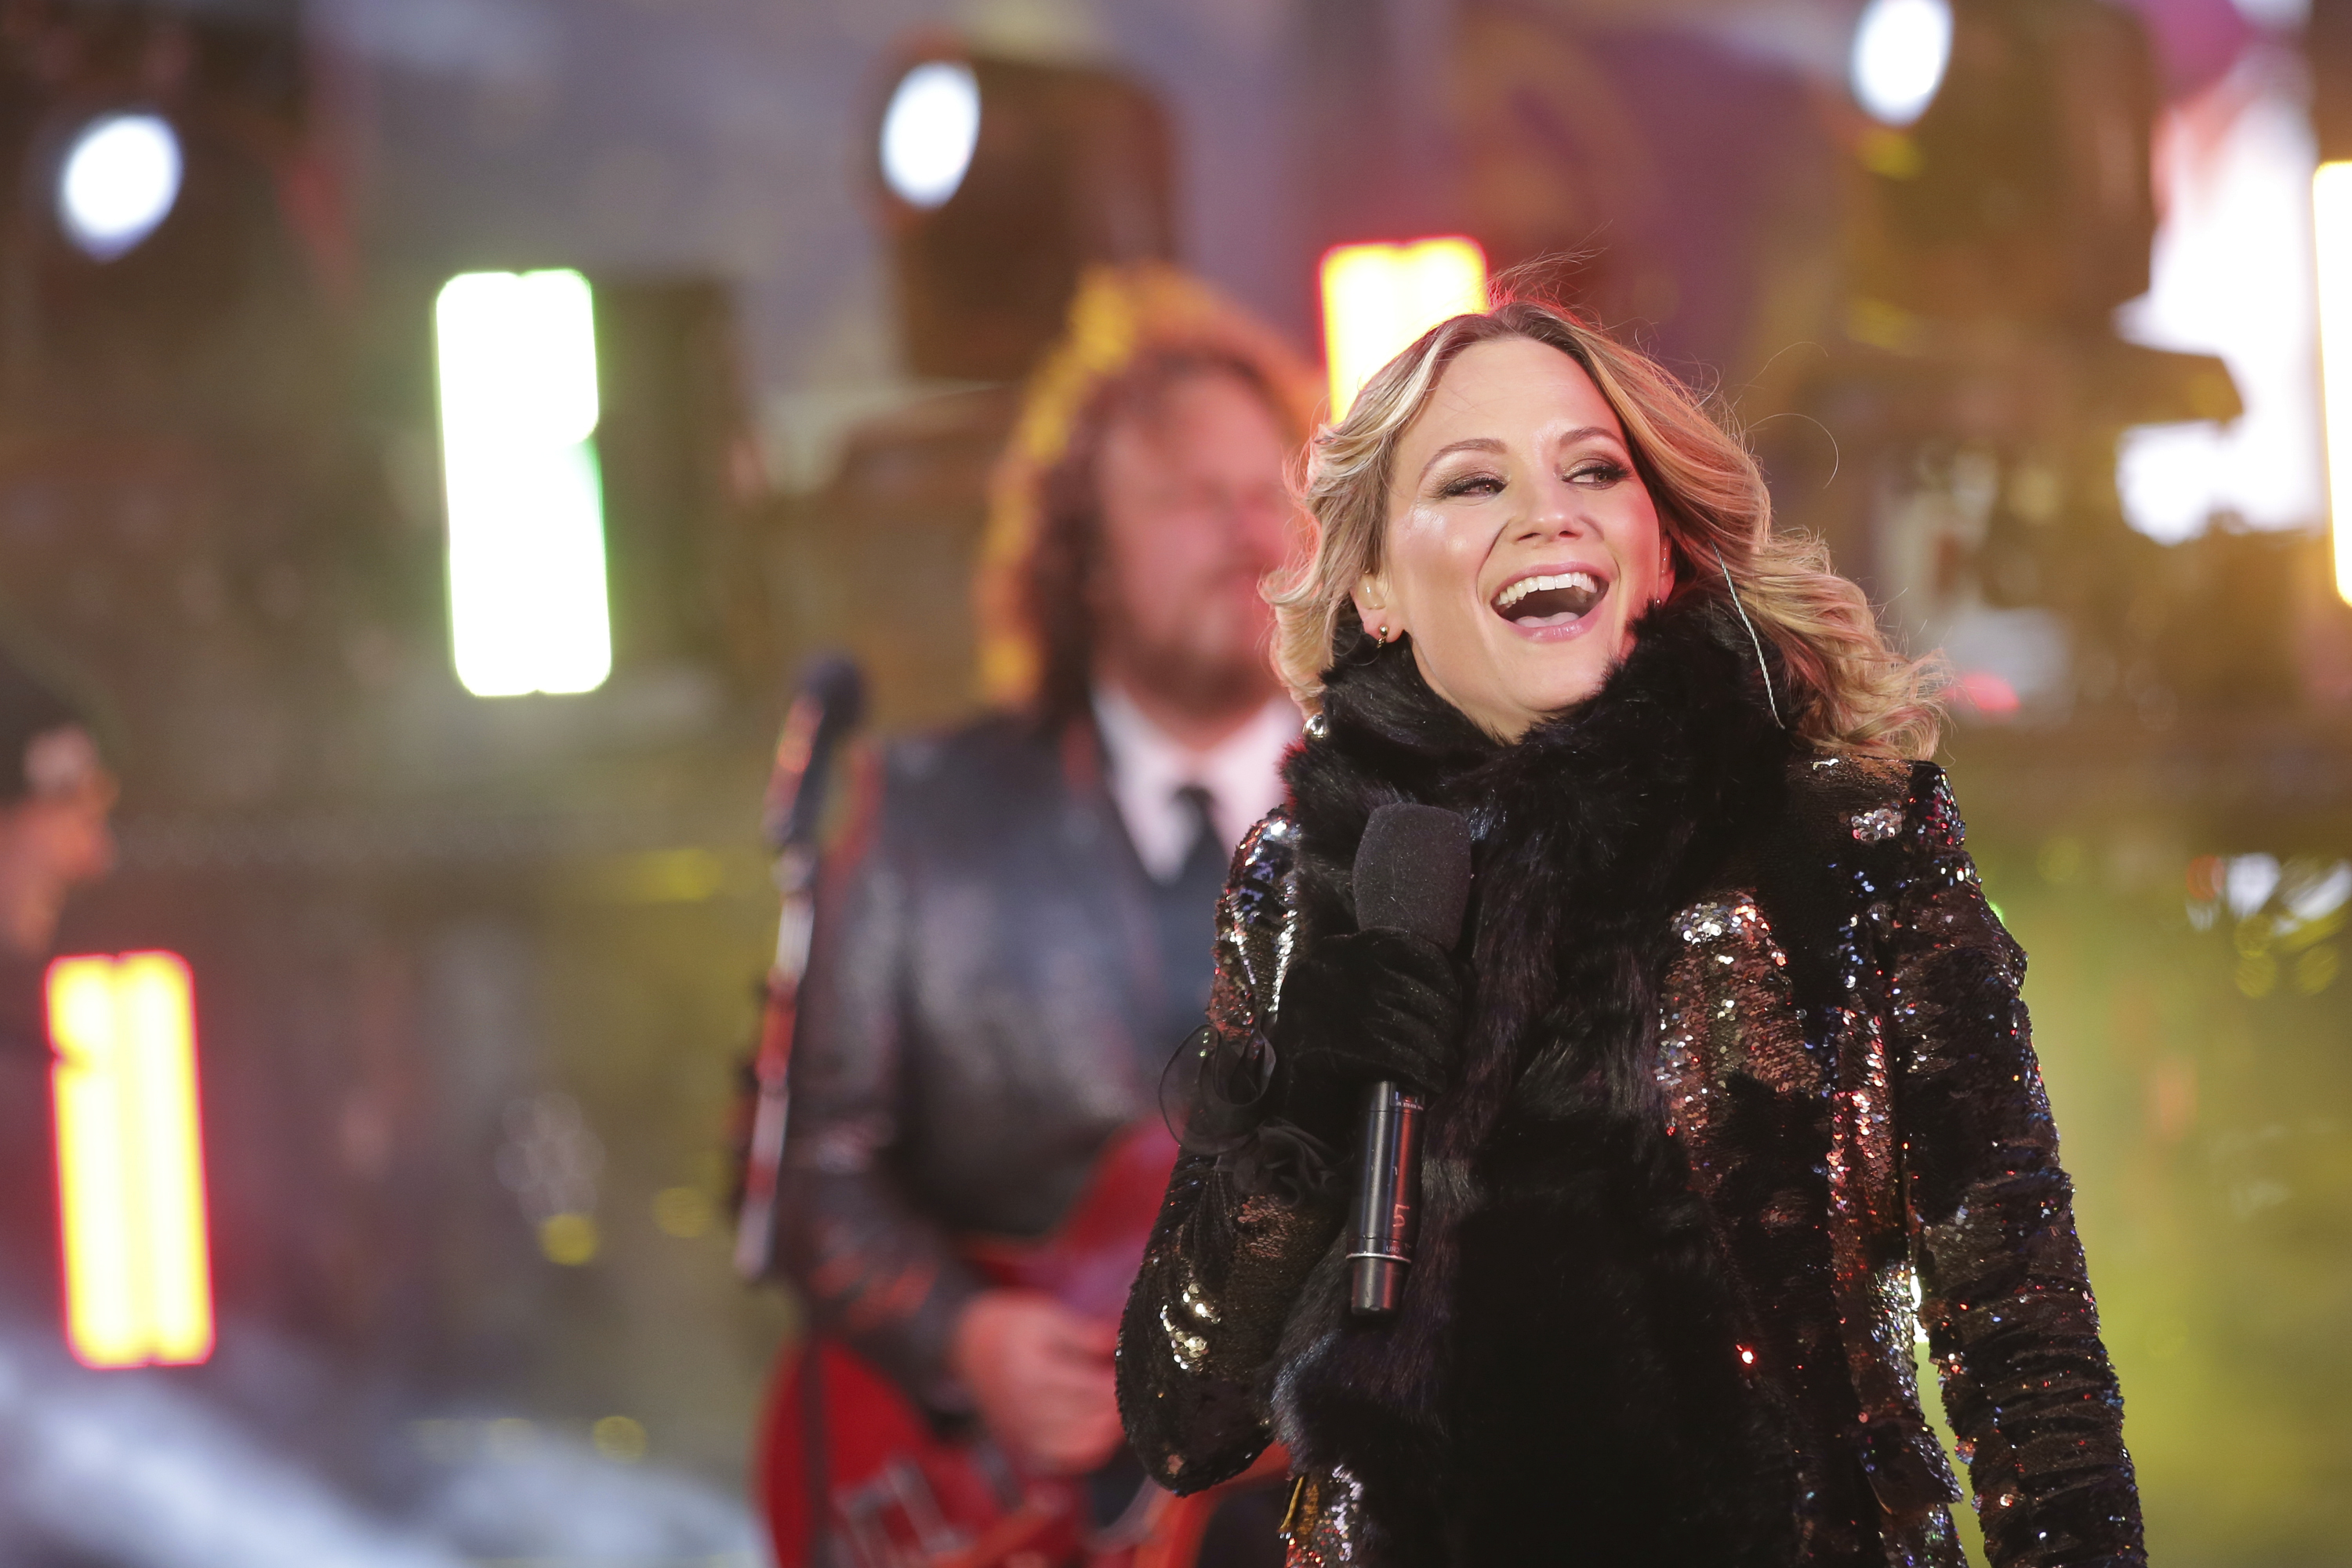 <div class='meta'><div class='origin-logo' data-origin='AP'></div><span class='caption-text' data-credit='Brent N. Clarke/Invision/AP'>Jennifer Nettles, of Sugarland, performs on stage at the New Year's Eve celebration in Times Square on Sunday, Dec. 31, 2017, in New York. (Photo by Brent N. Clarke/Invision/AP)</span></div>